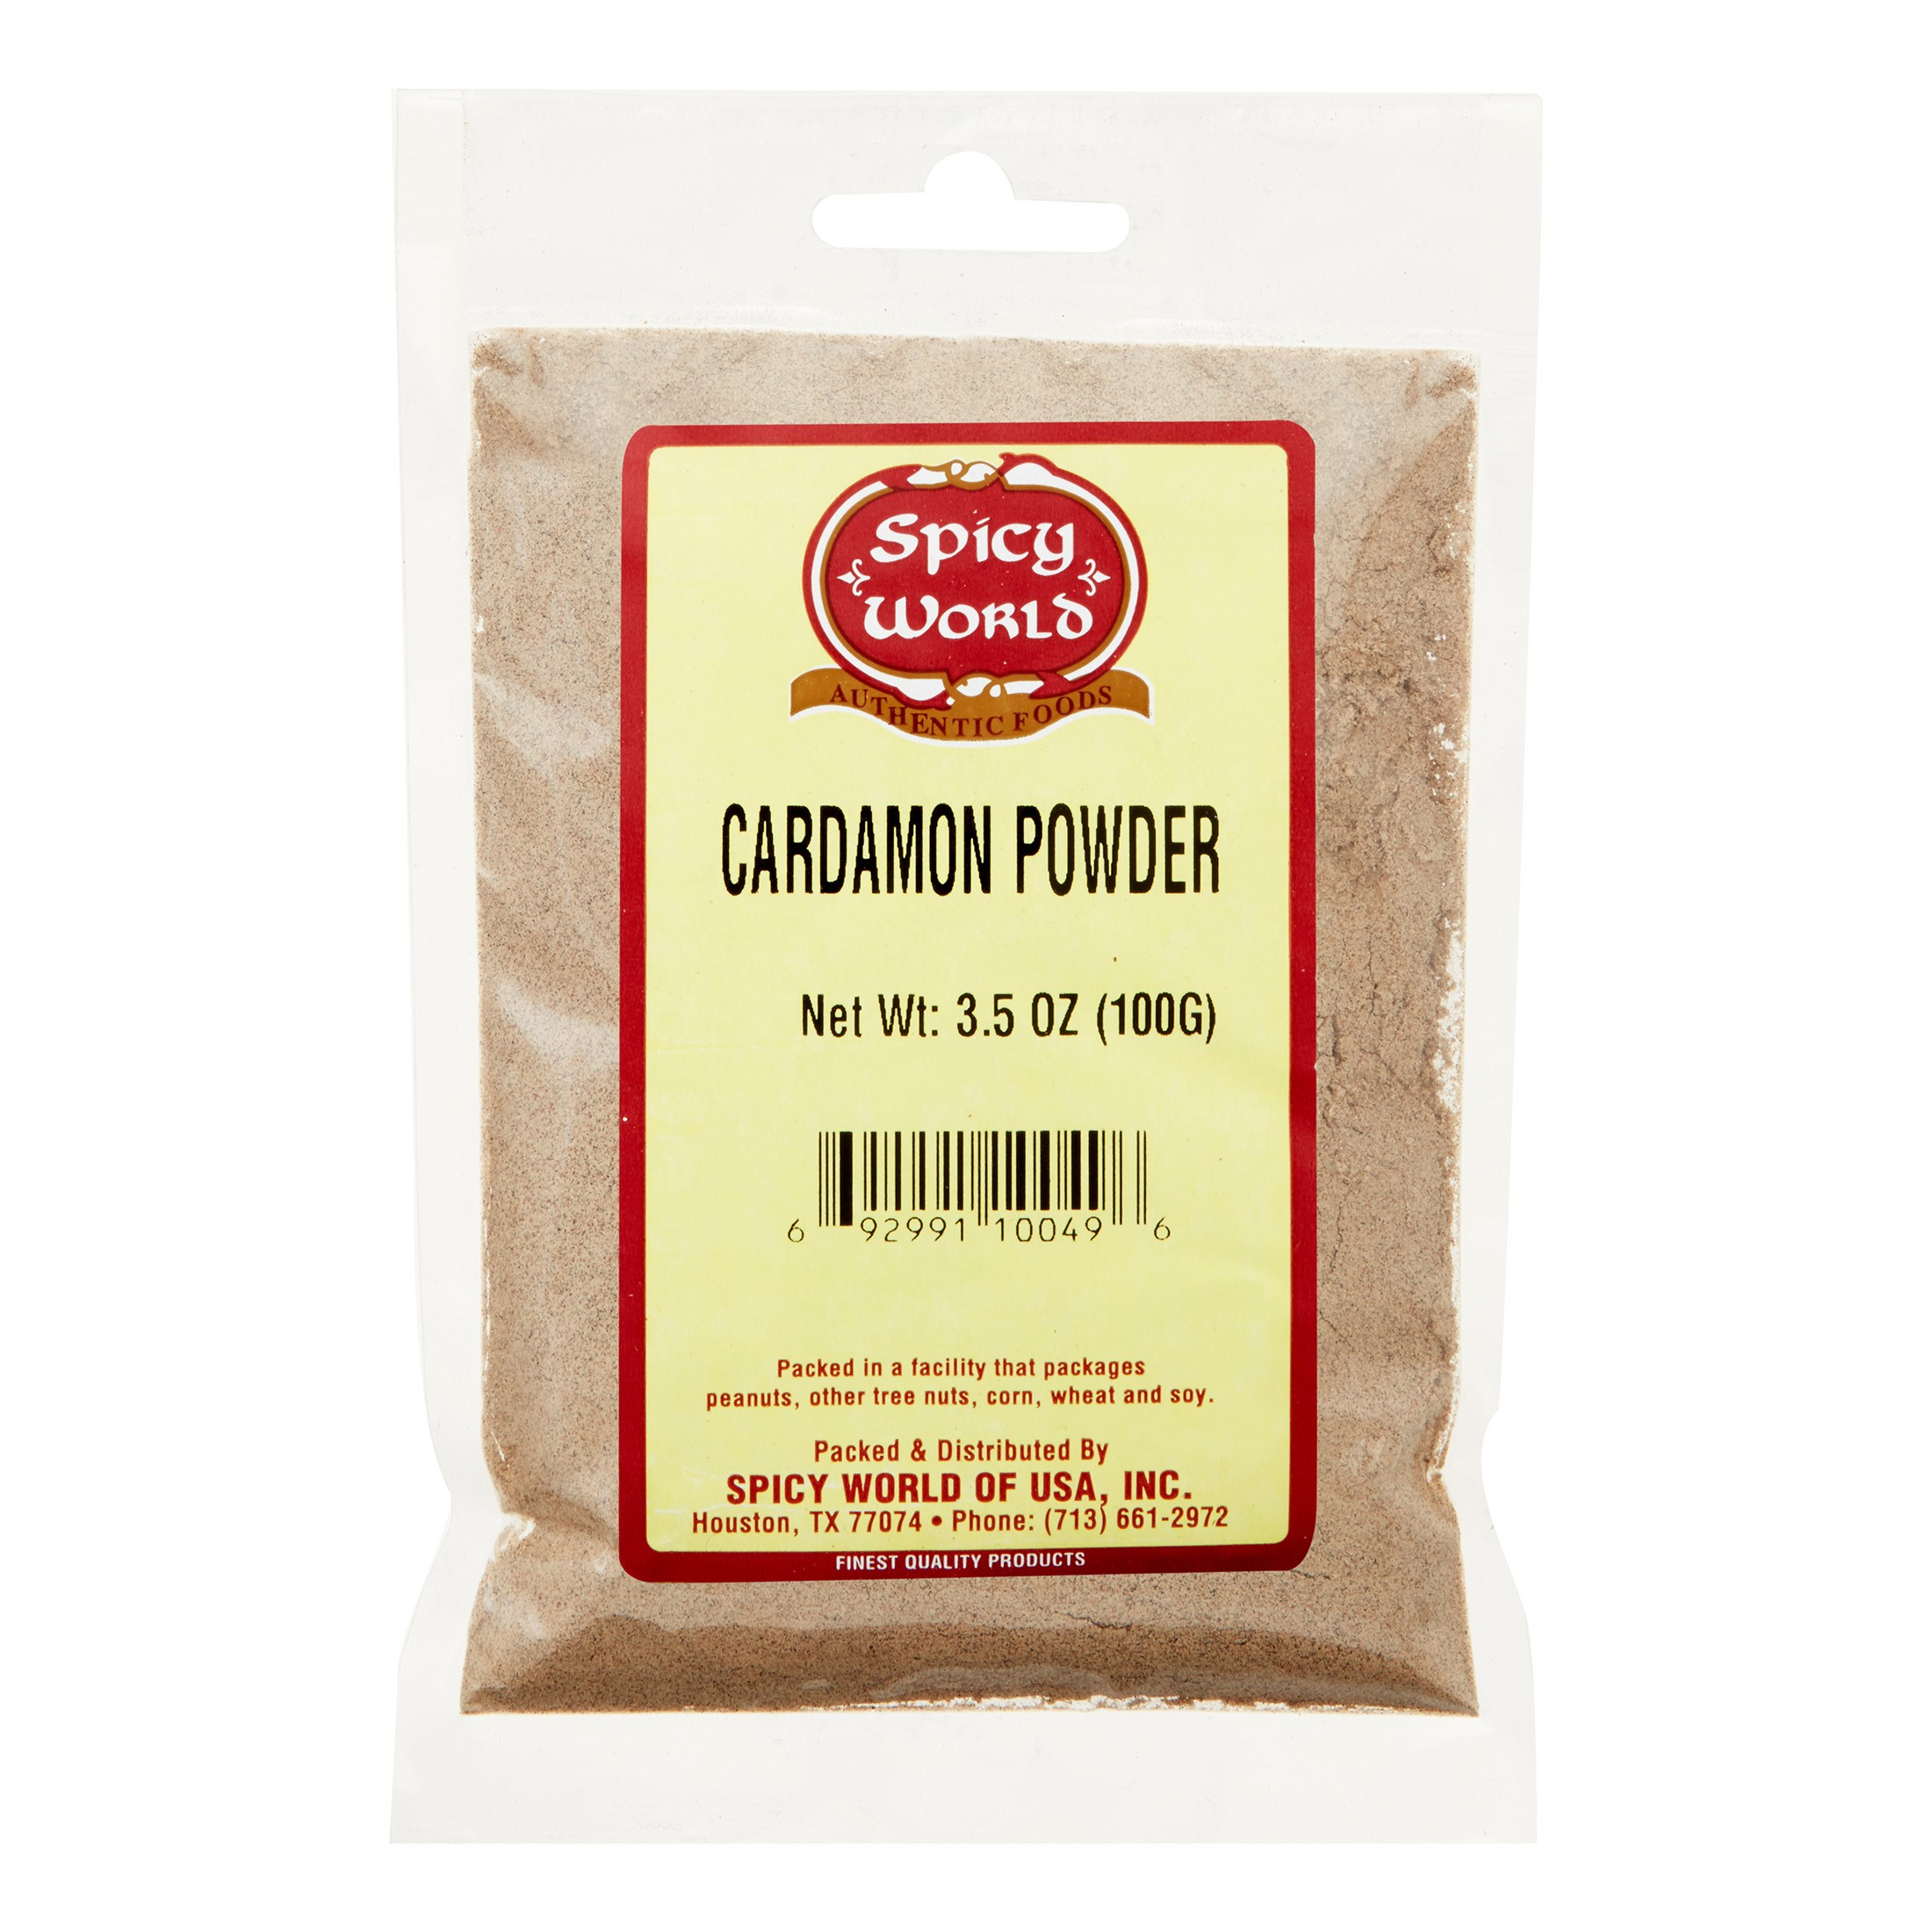 Spicy World Cardamom Powder, 3.5 Oz